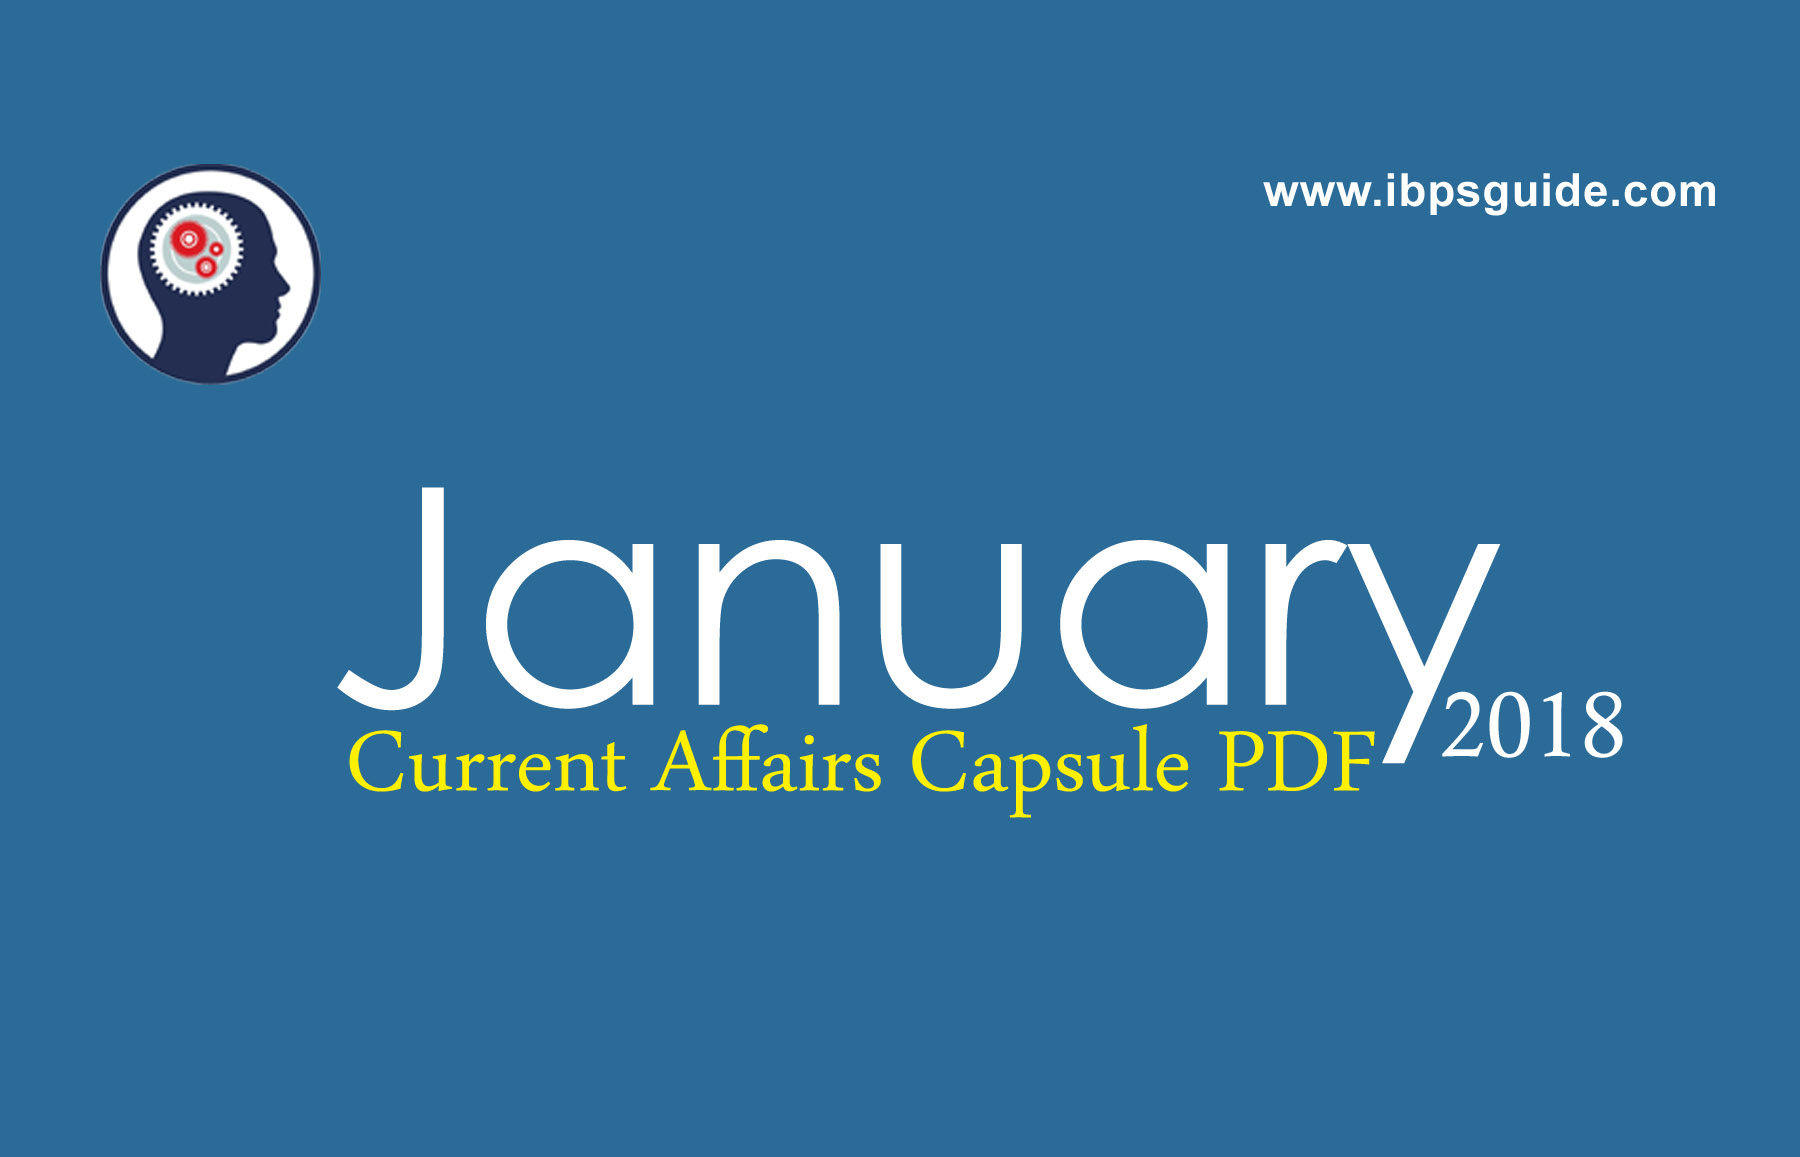 Monthly Current Affairs PDF January 2018 Free Download